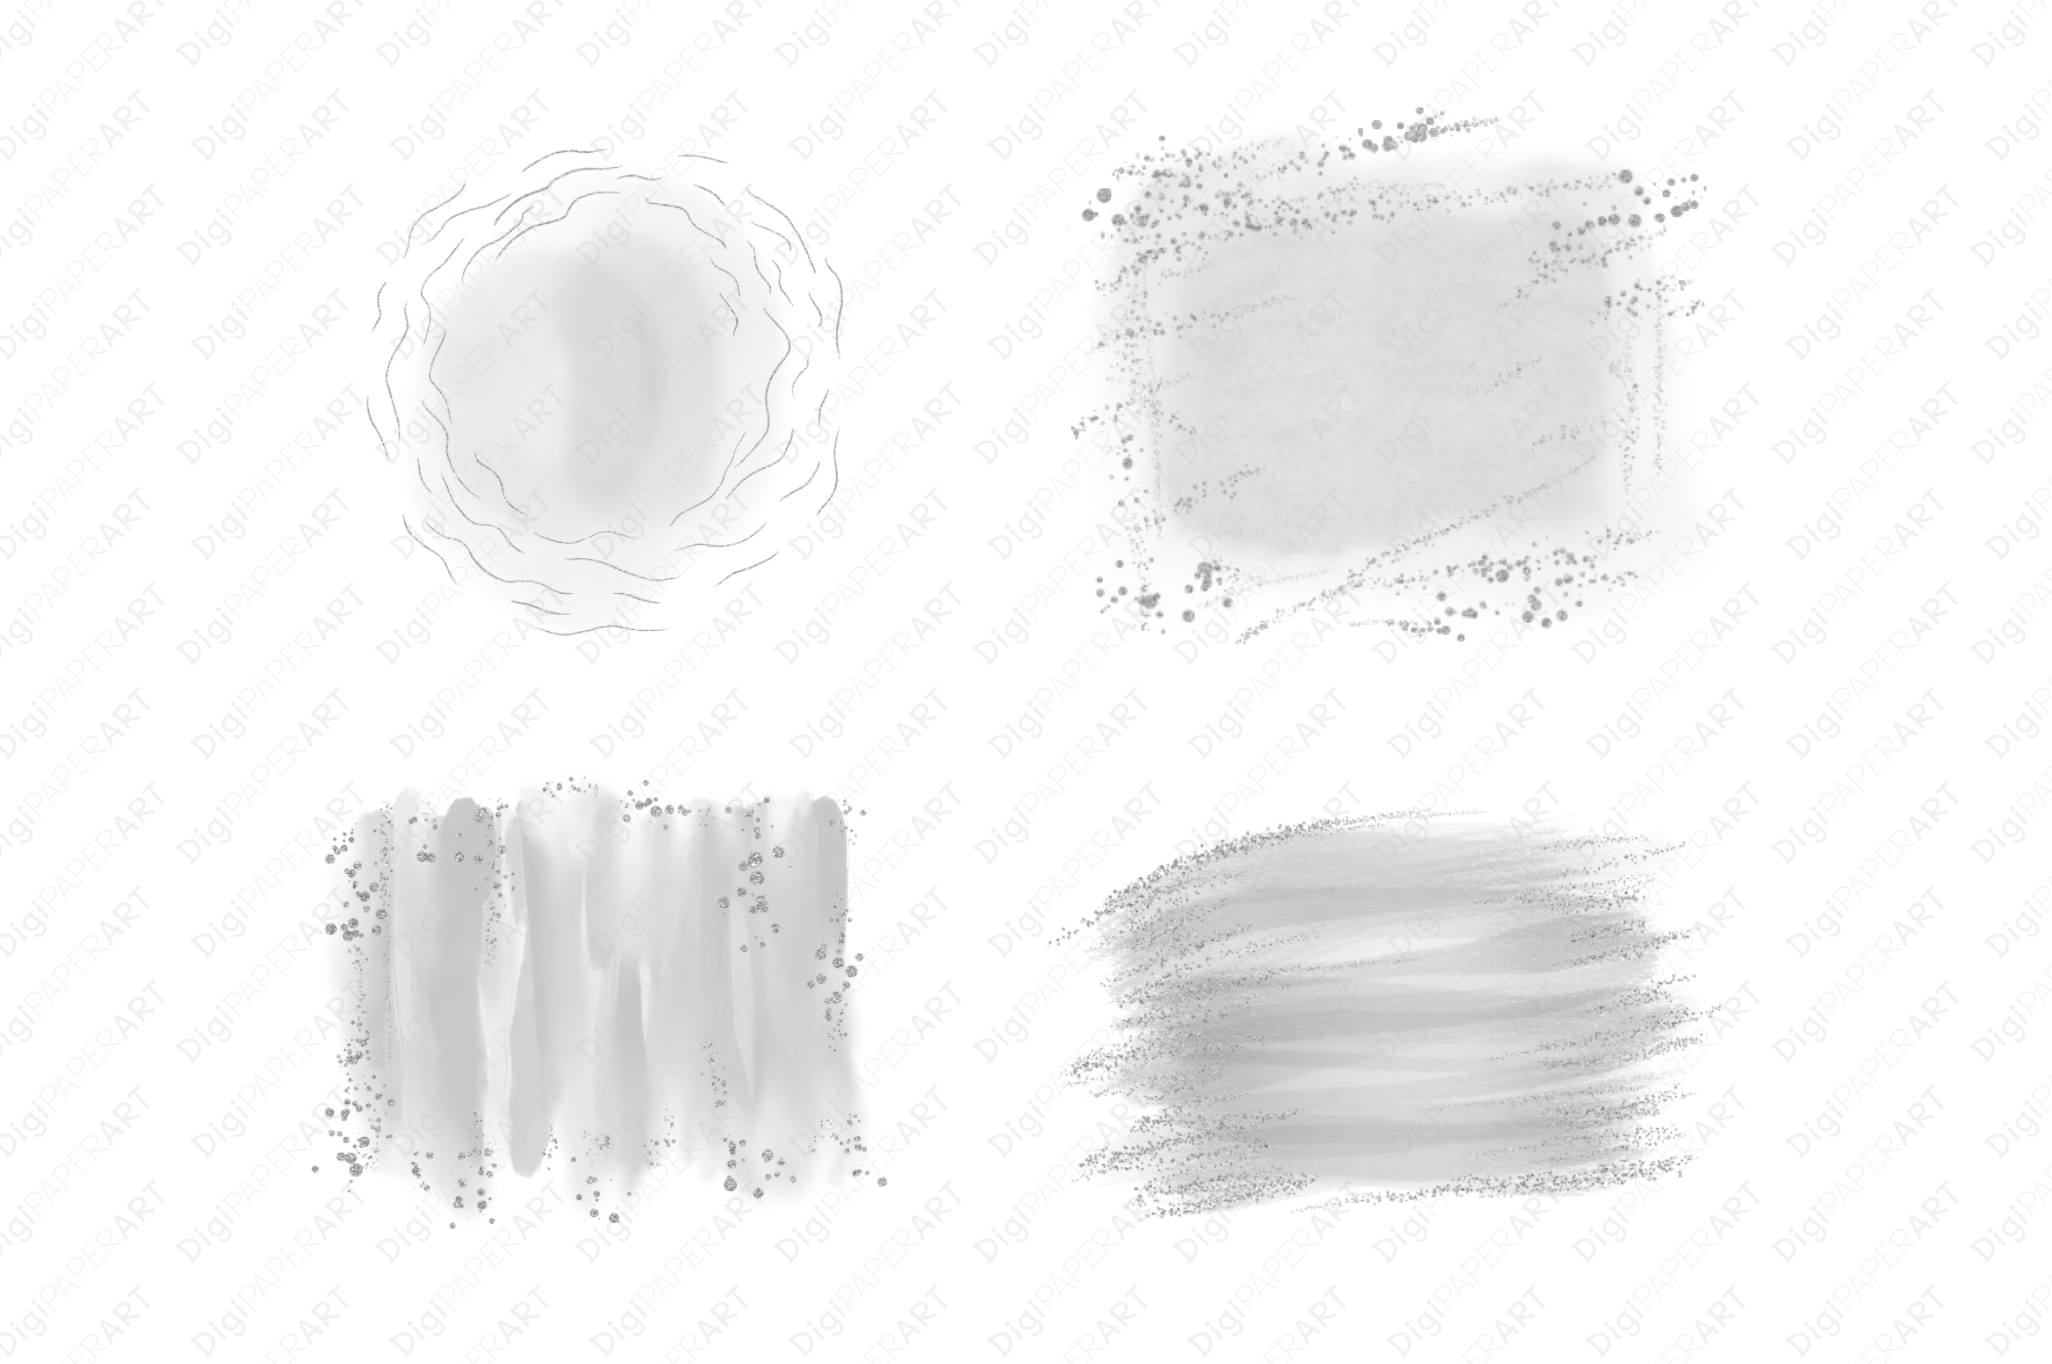 Silver Glitter and Grey Watercolor Backgrounds example image 2